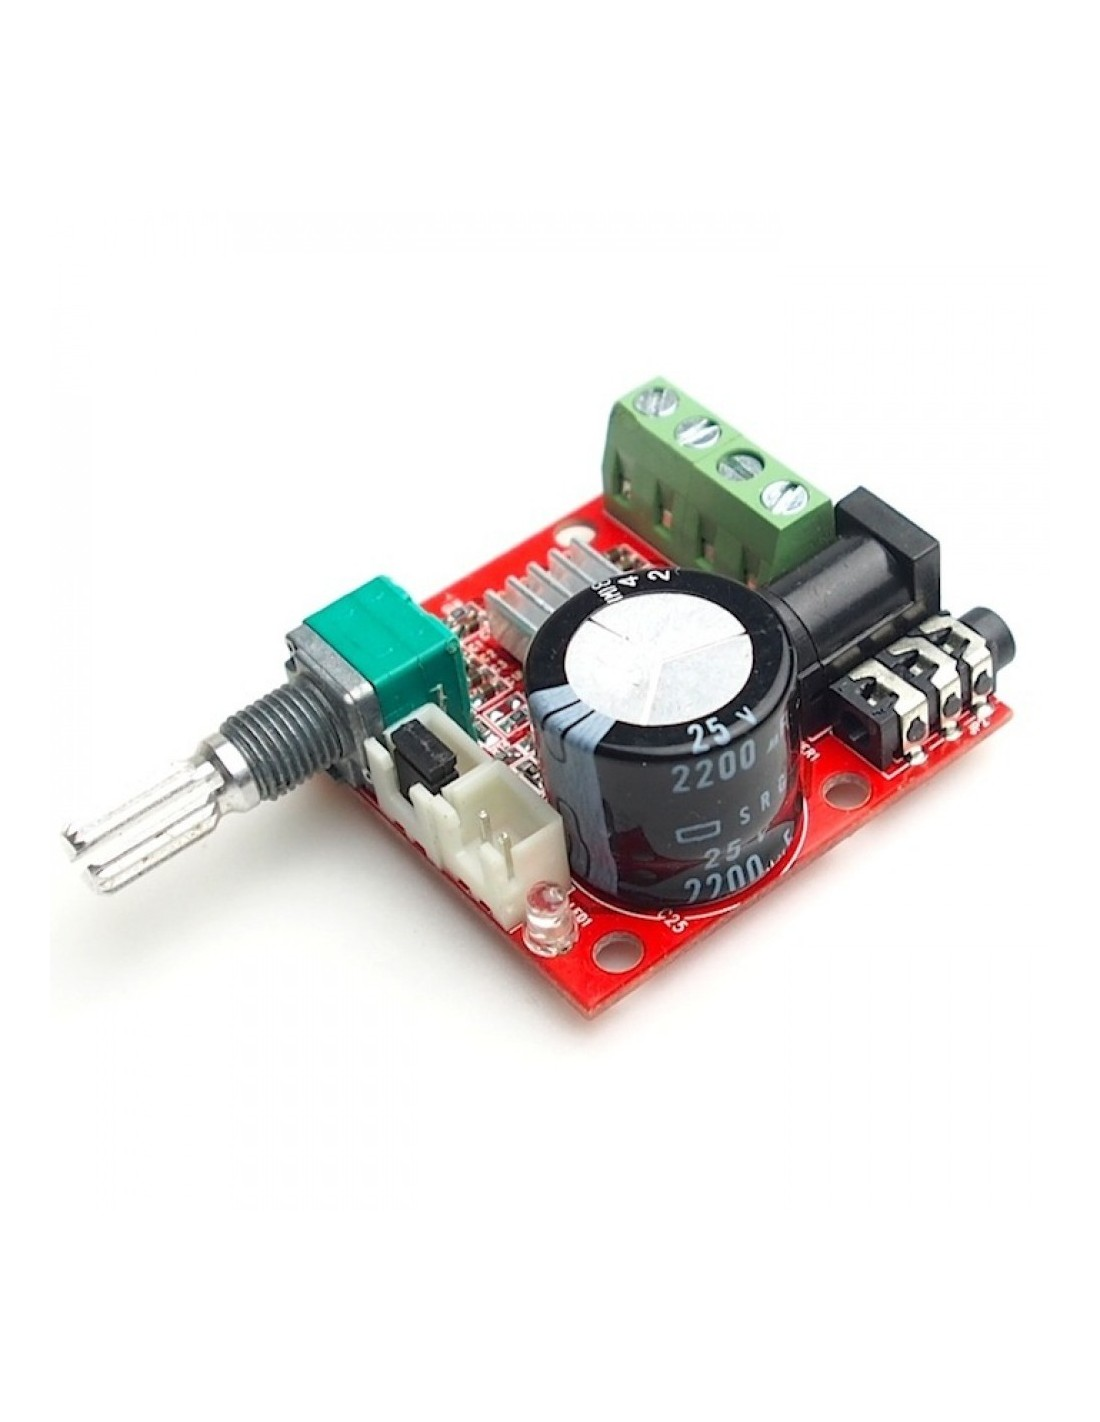 210w Dual Channel Hifi Mini Audio Amplifier Pam8610 Schematic Using Laser Diode And Lm386 Low Voltage Tap To Zoom